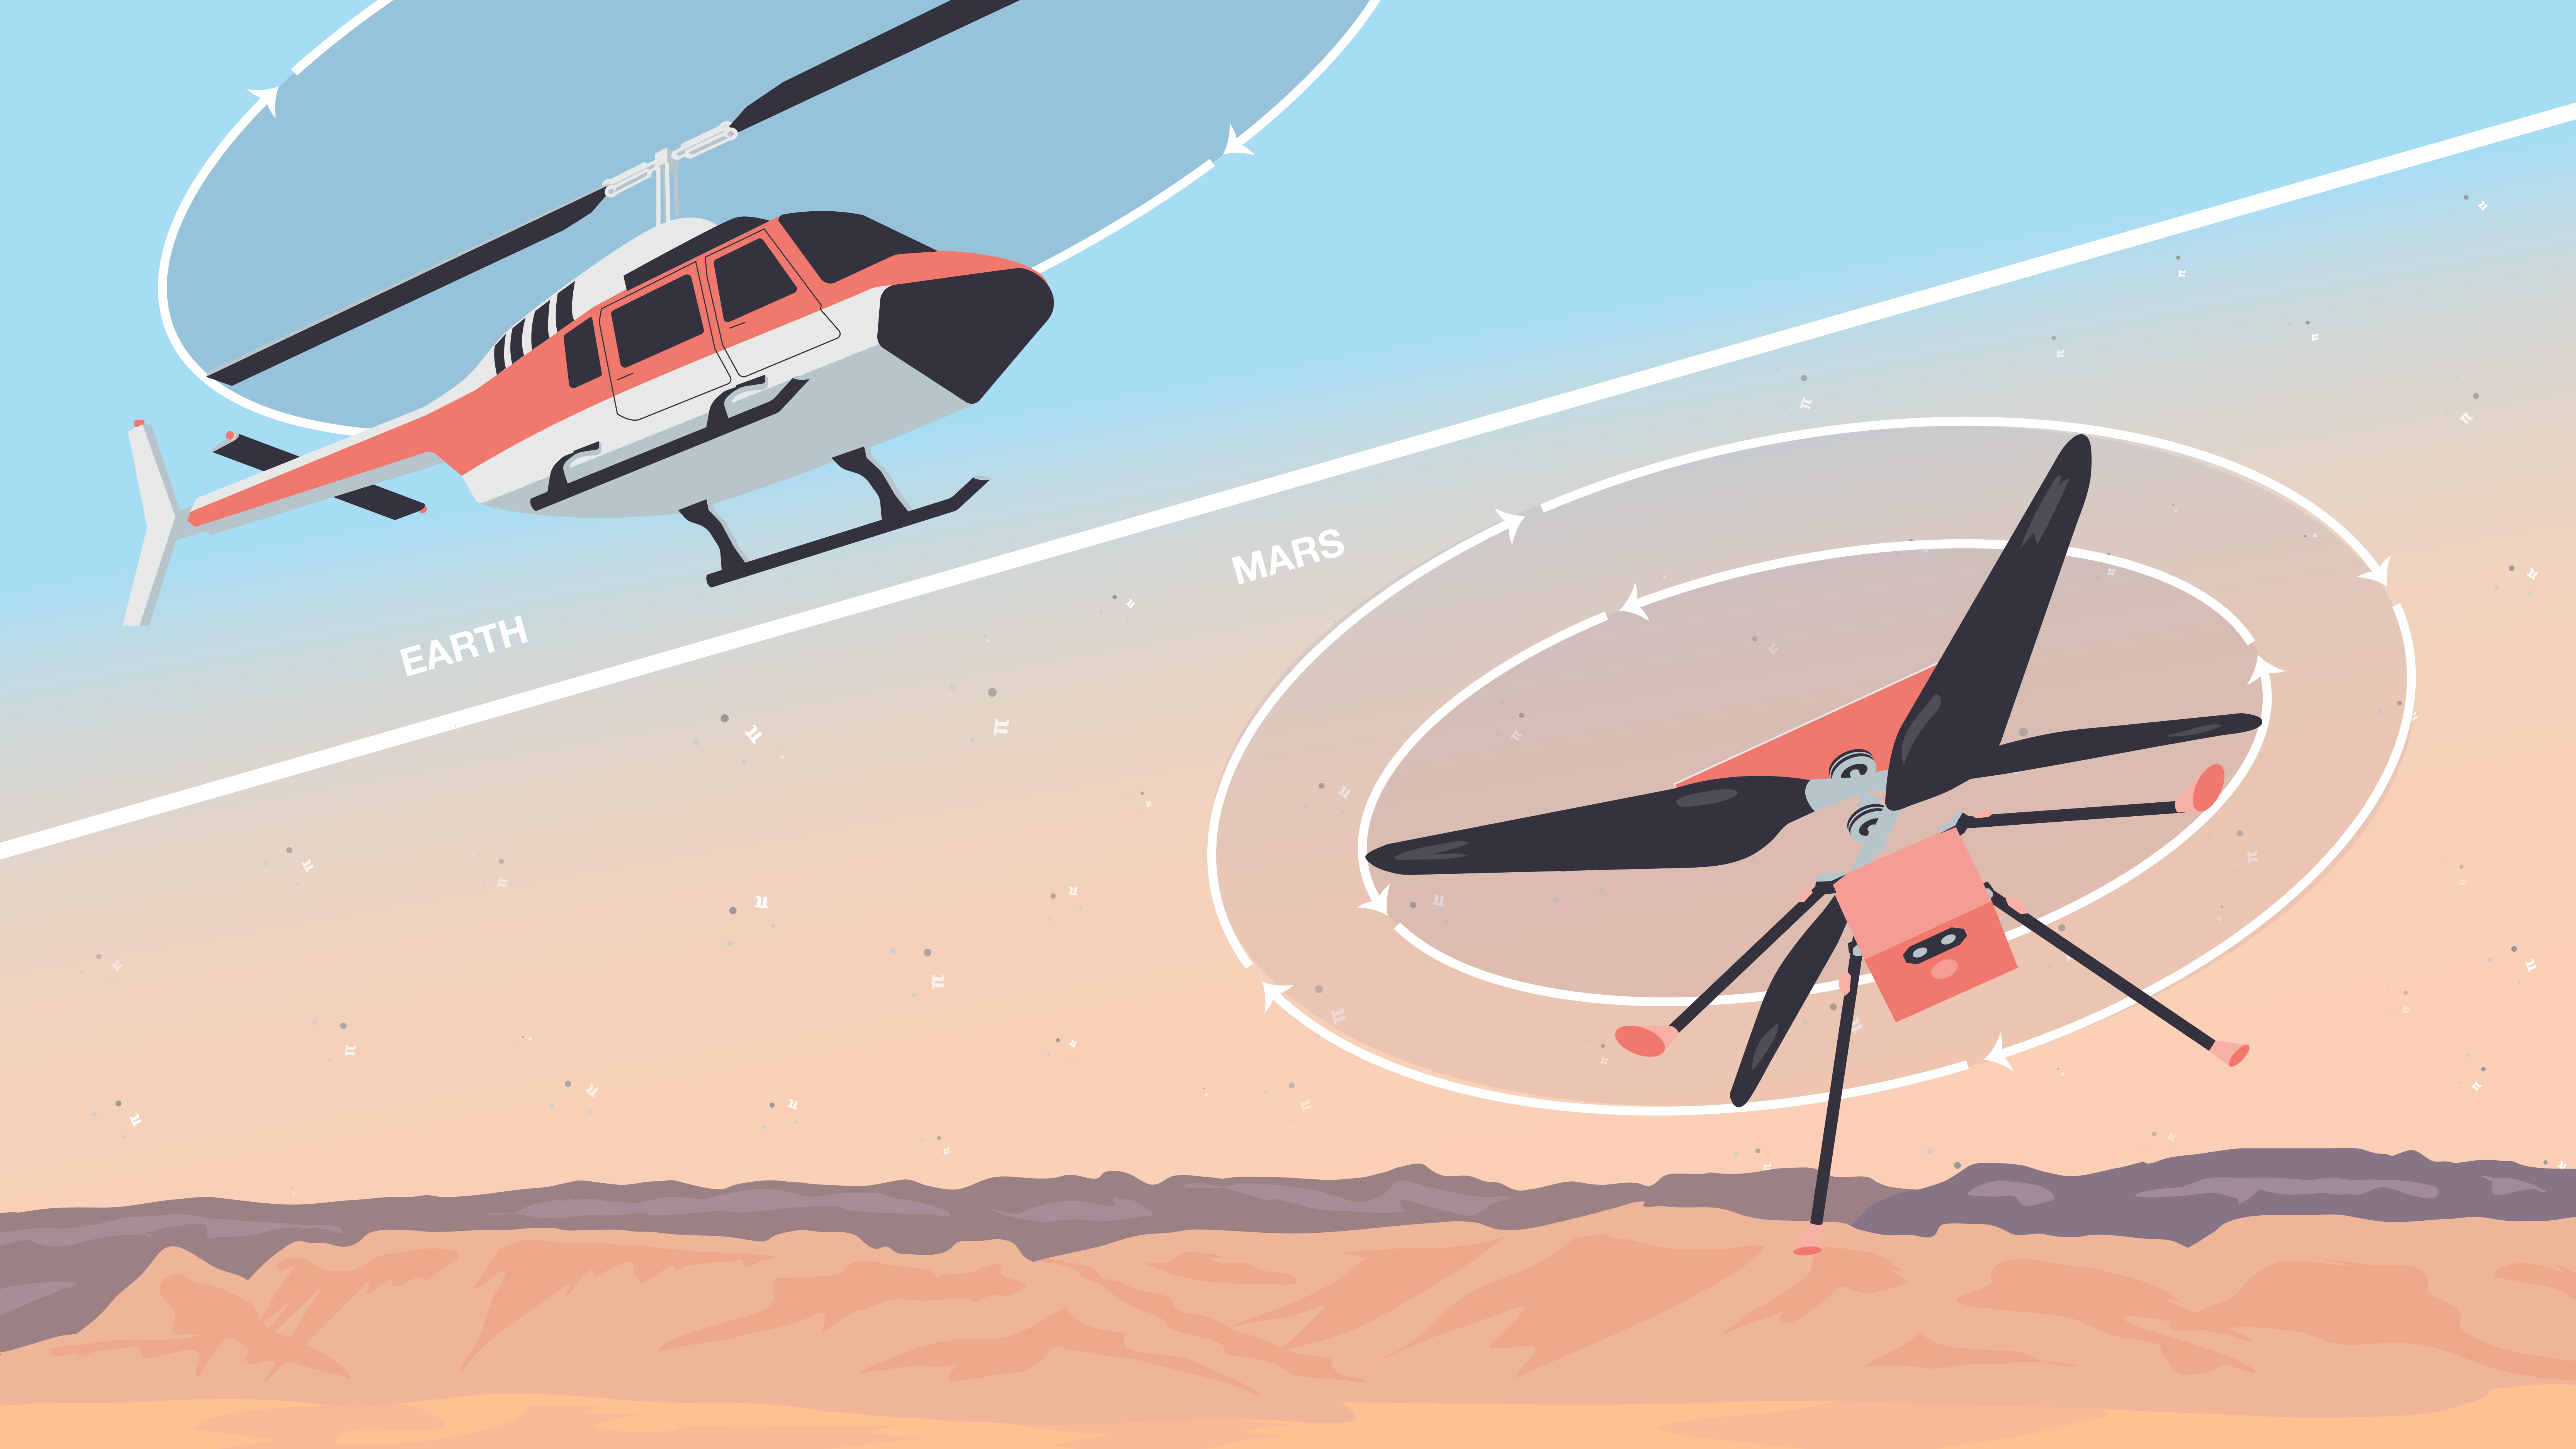 Illustration (split-screen) of helicopter on Earth flying compared with Ingenuity flying on Mars.